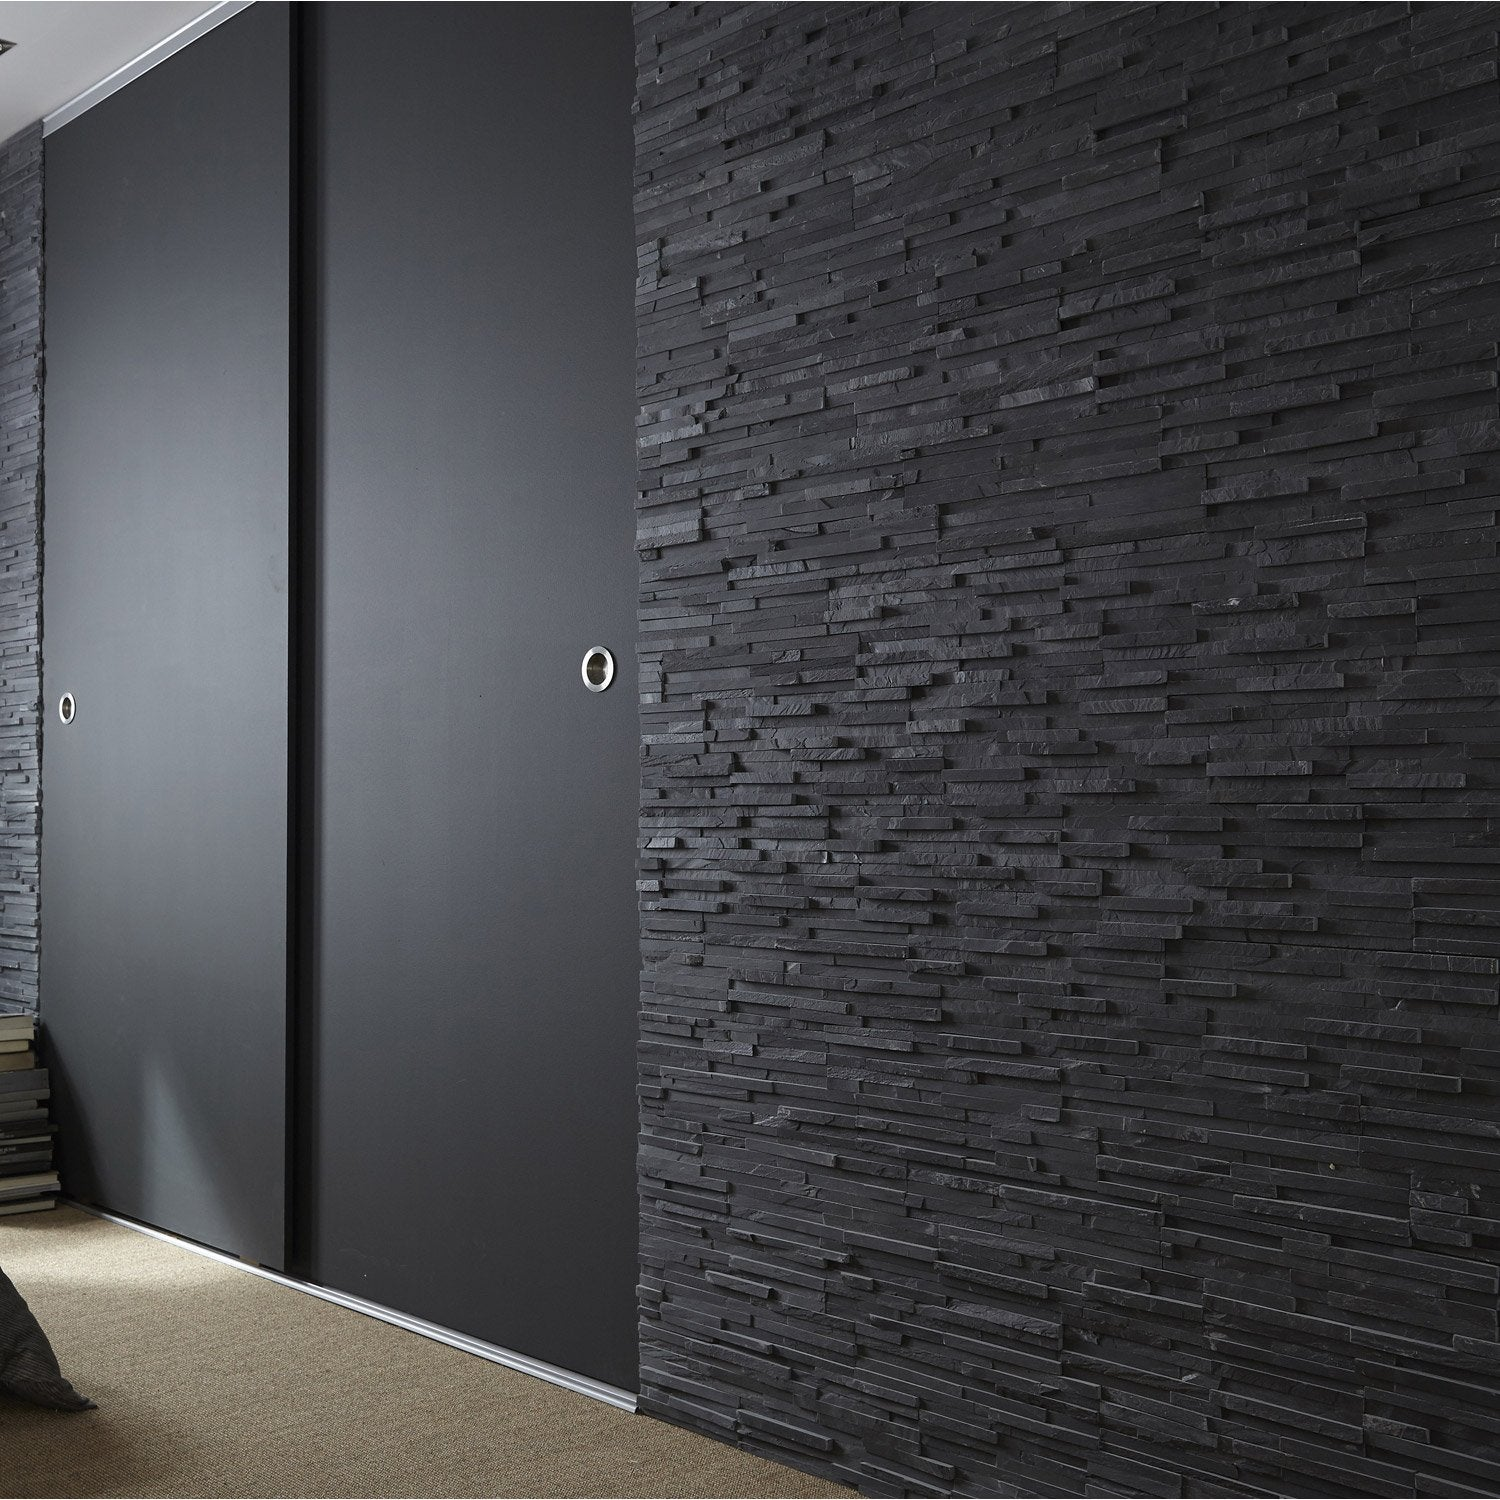 parement pierre leroy merlin papier peint new york murs. Black Bedroom Furniture Sets. Home Design Ideas